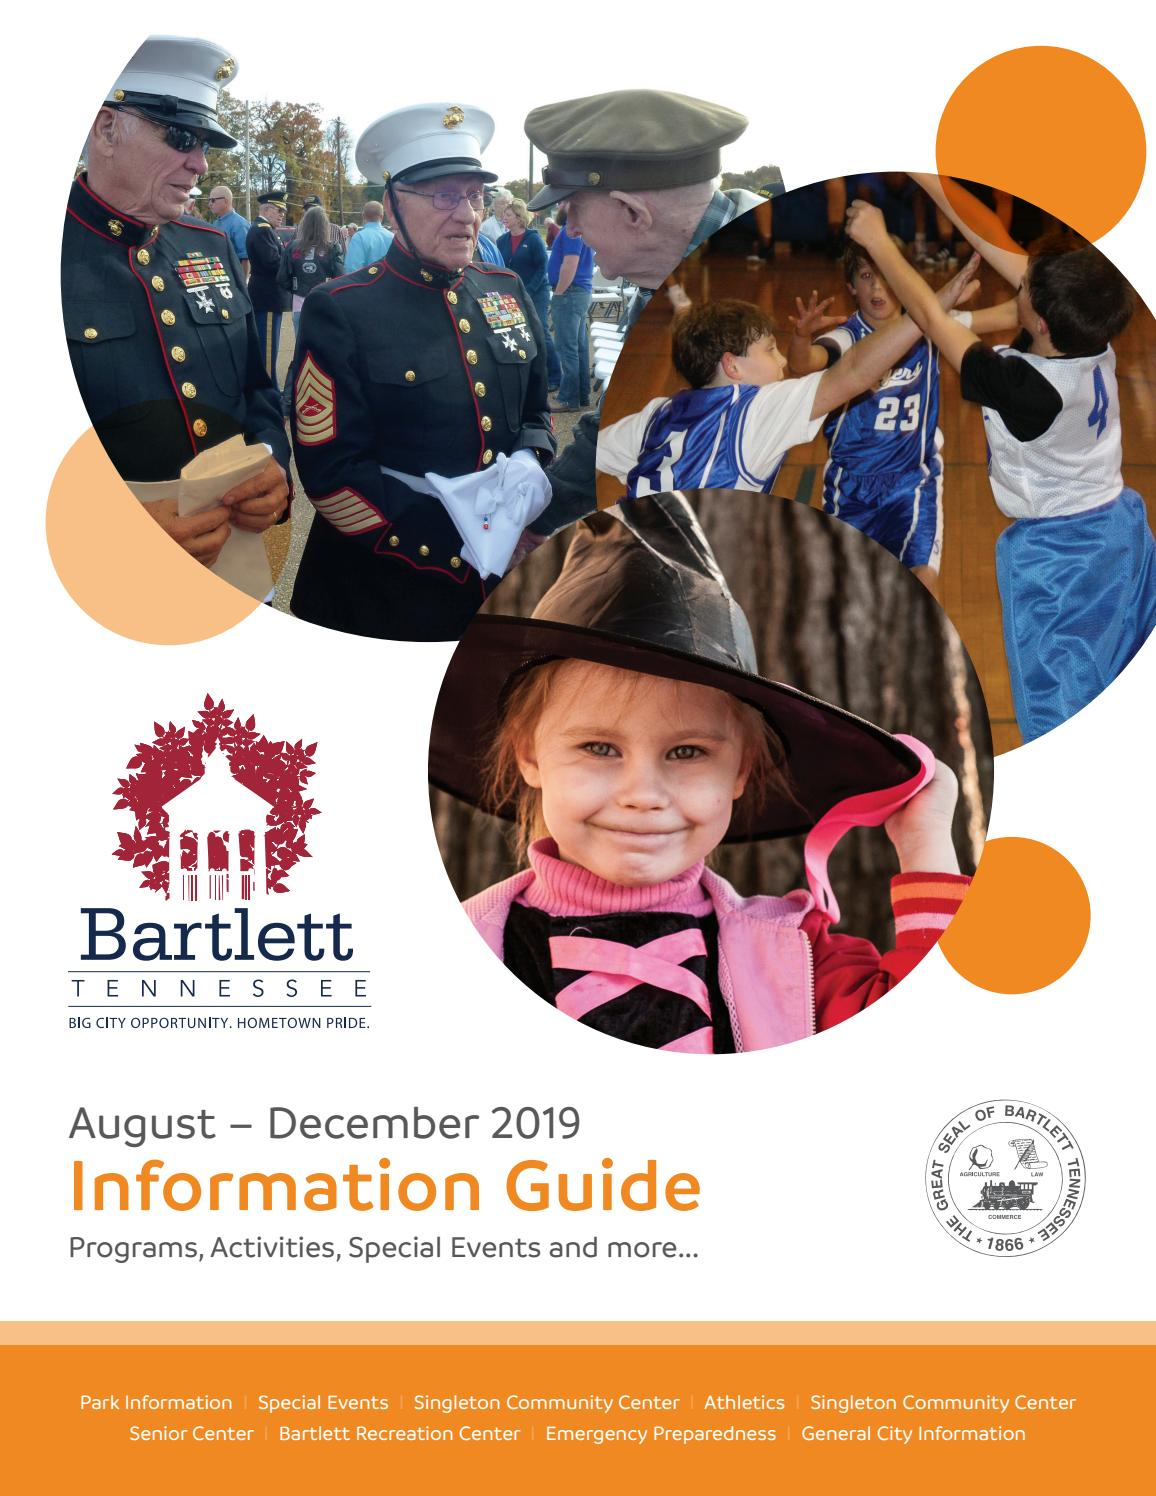 Bartlett Christmas Parade 2020 Route City of Bartlett Information Guide August – December 2019 by City